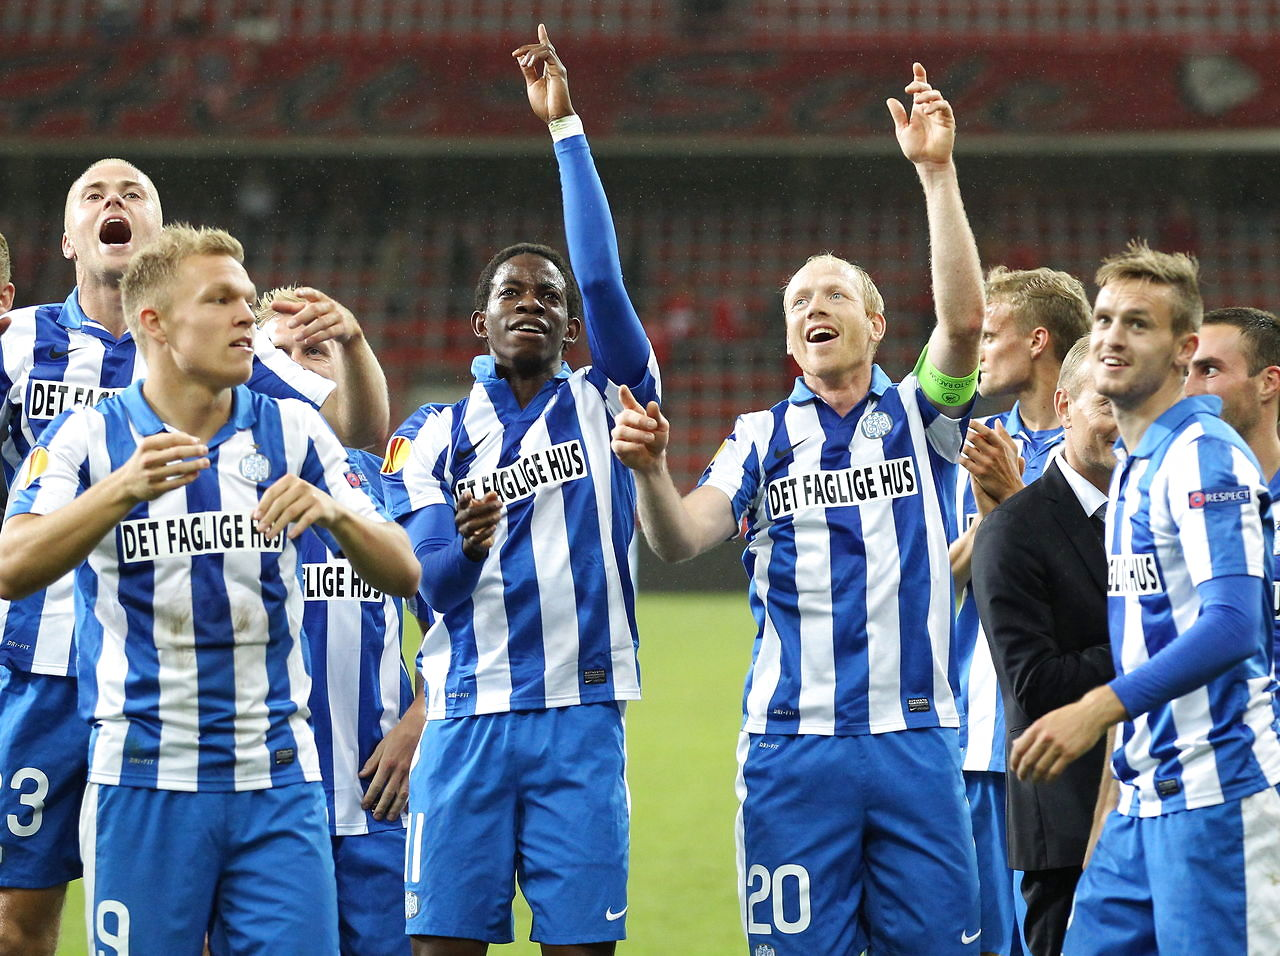 live football match escorts in esbjerg